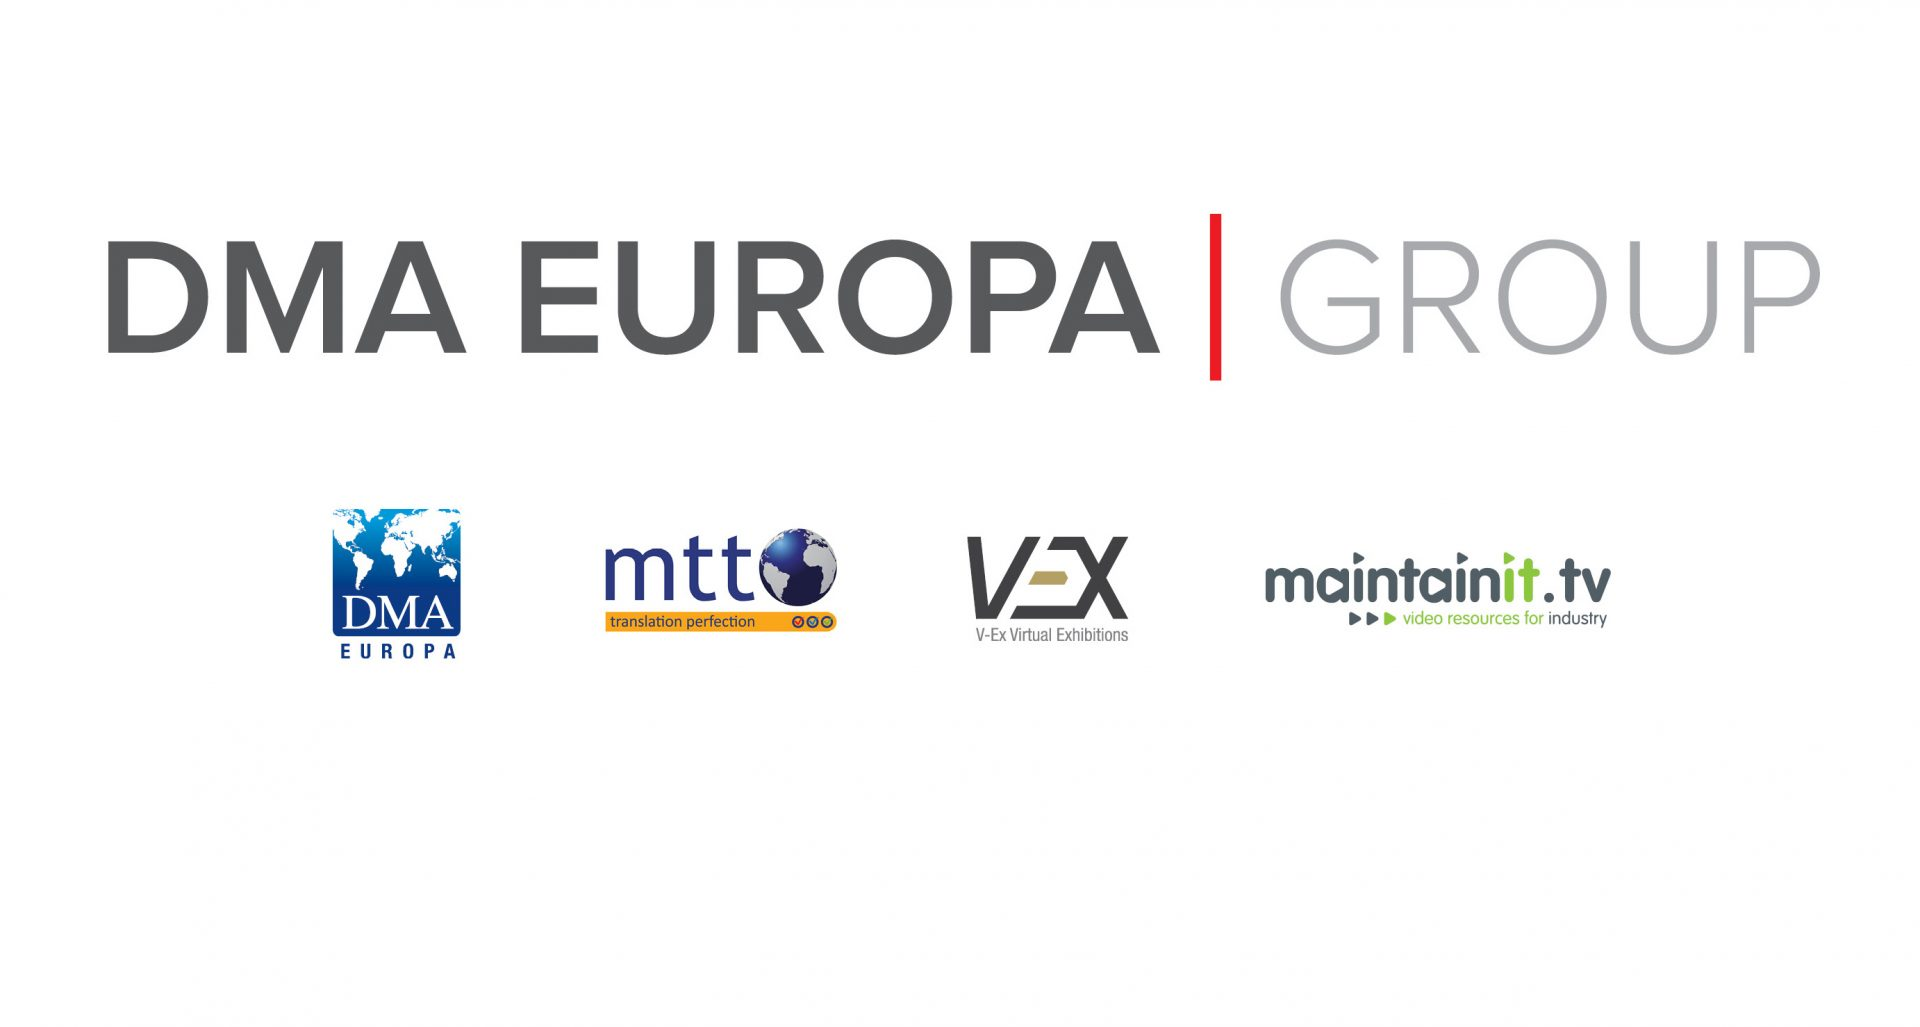 DMA Europa Group How Brexit affects our business title text & logos